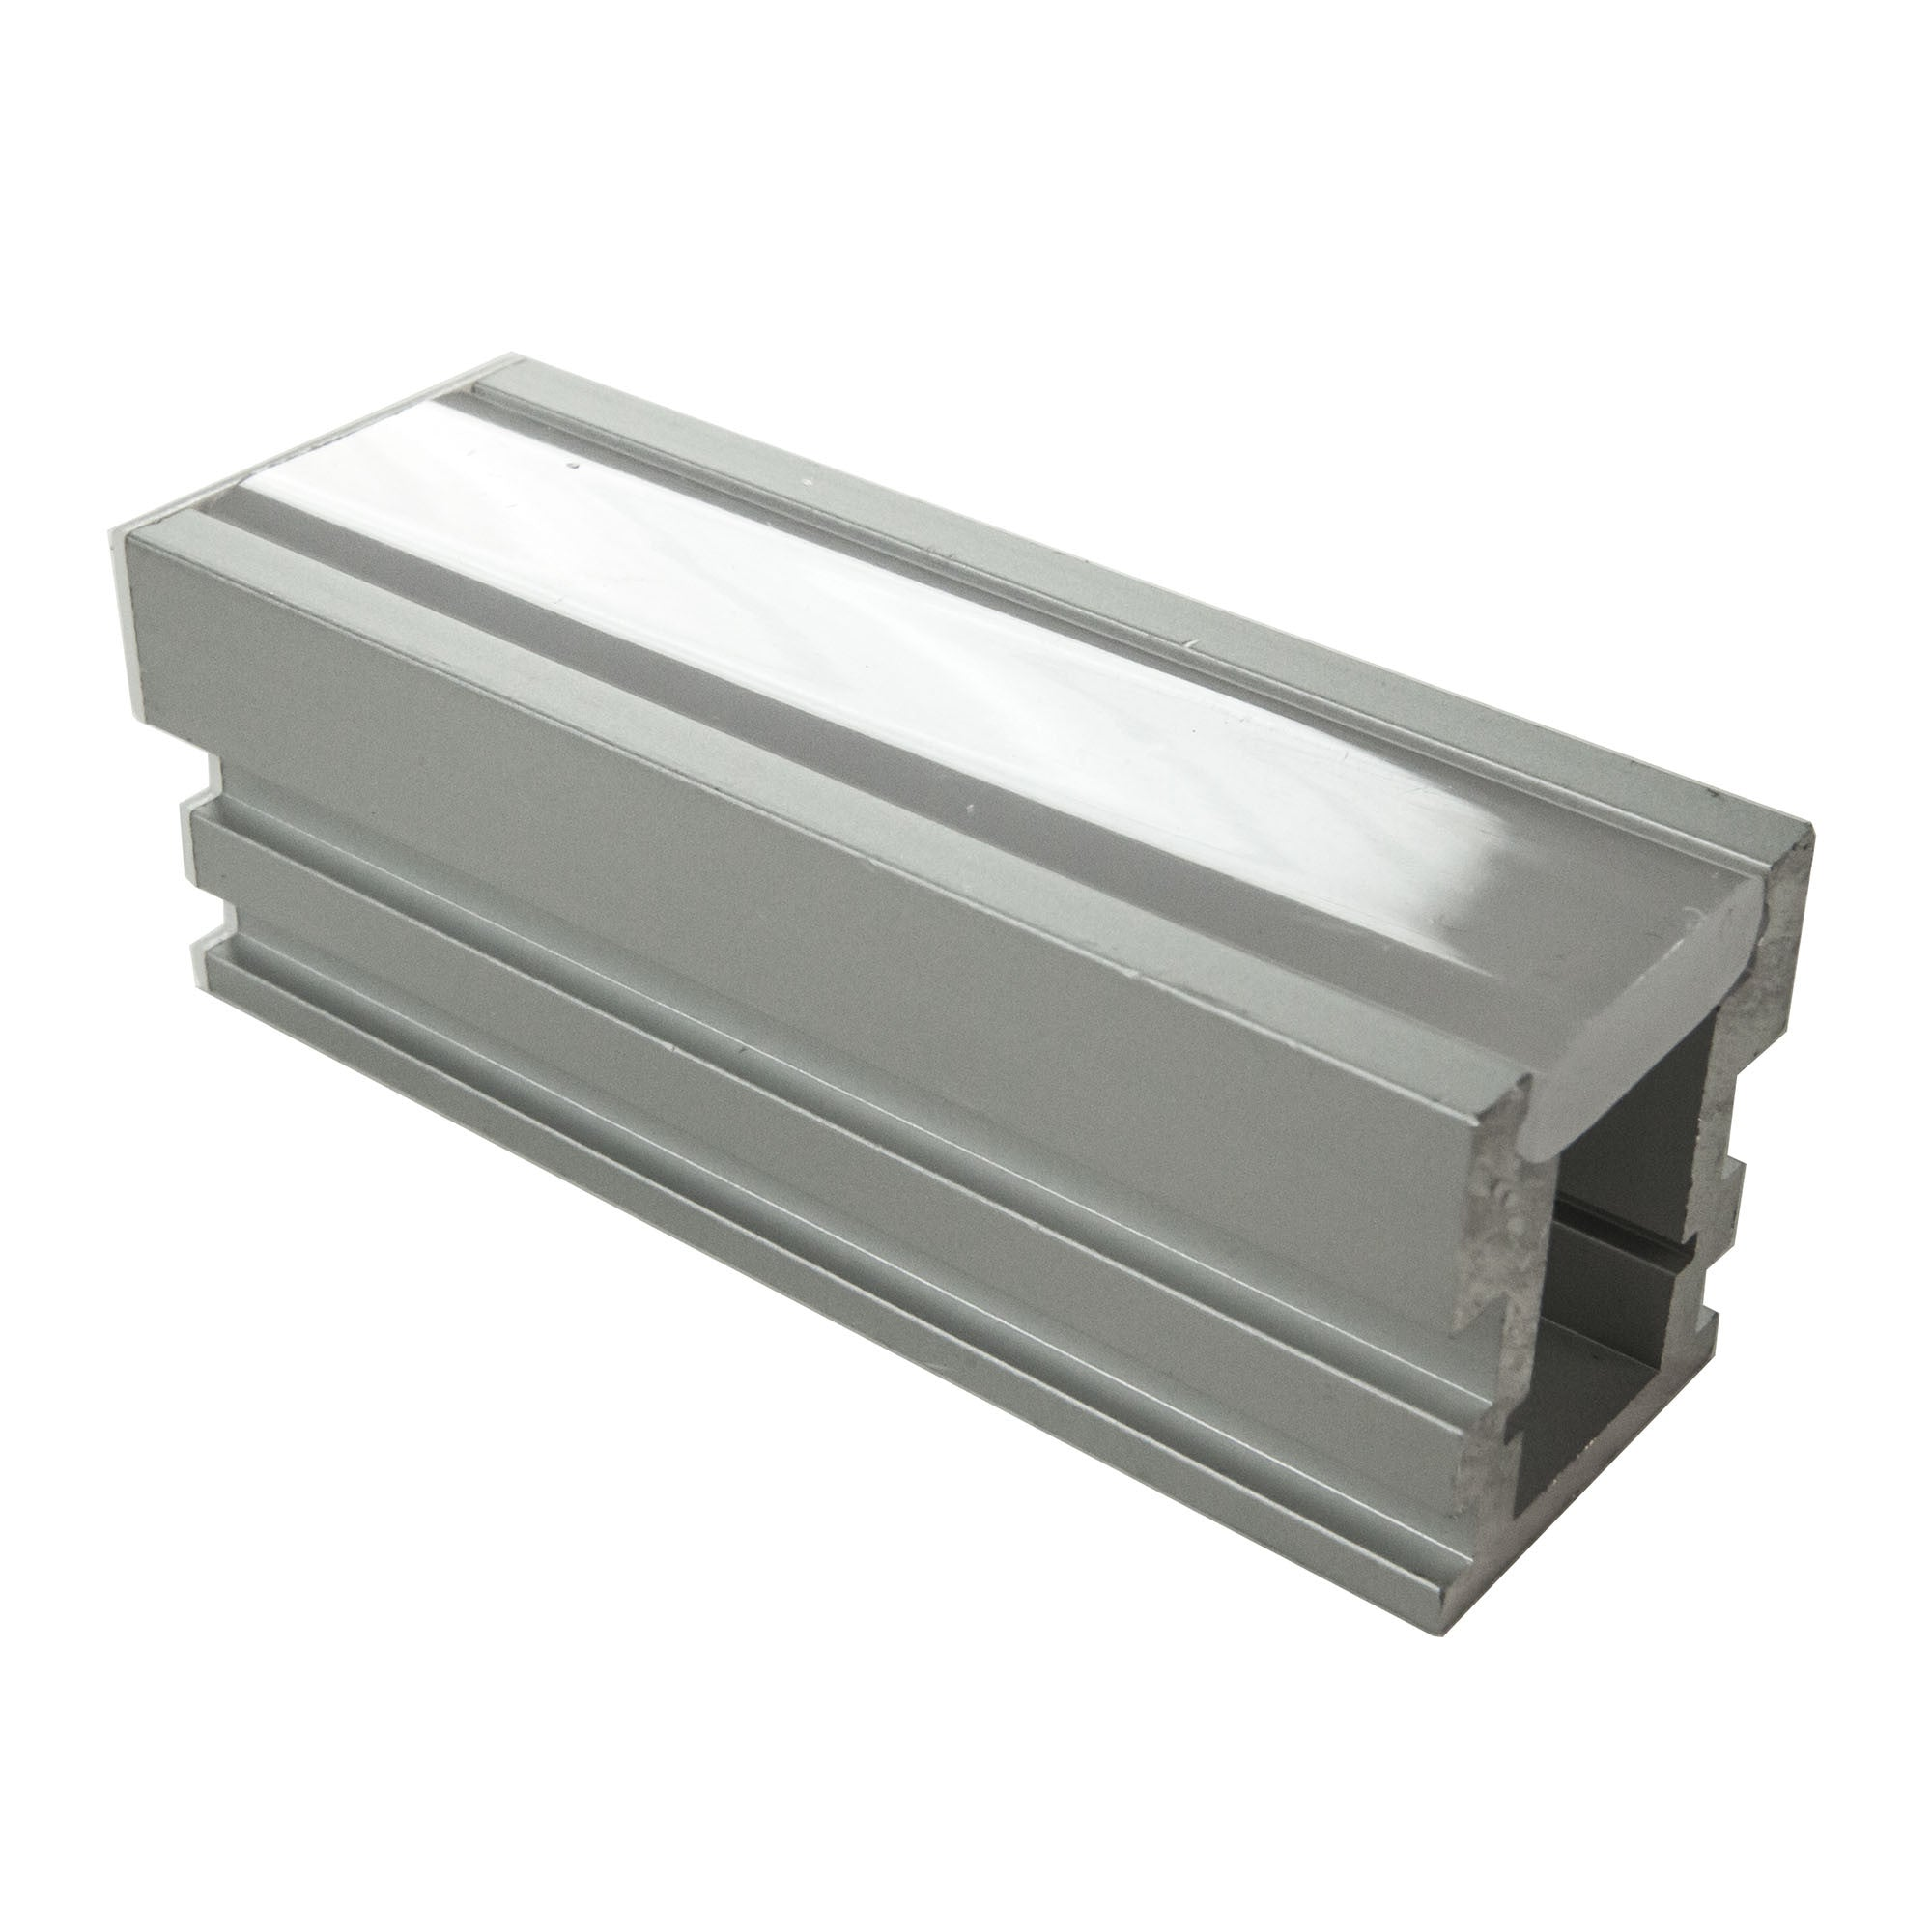 Aluminum Channel - MOSS-ALM-2626 - Moss LED